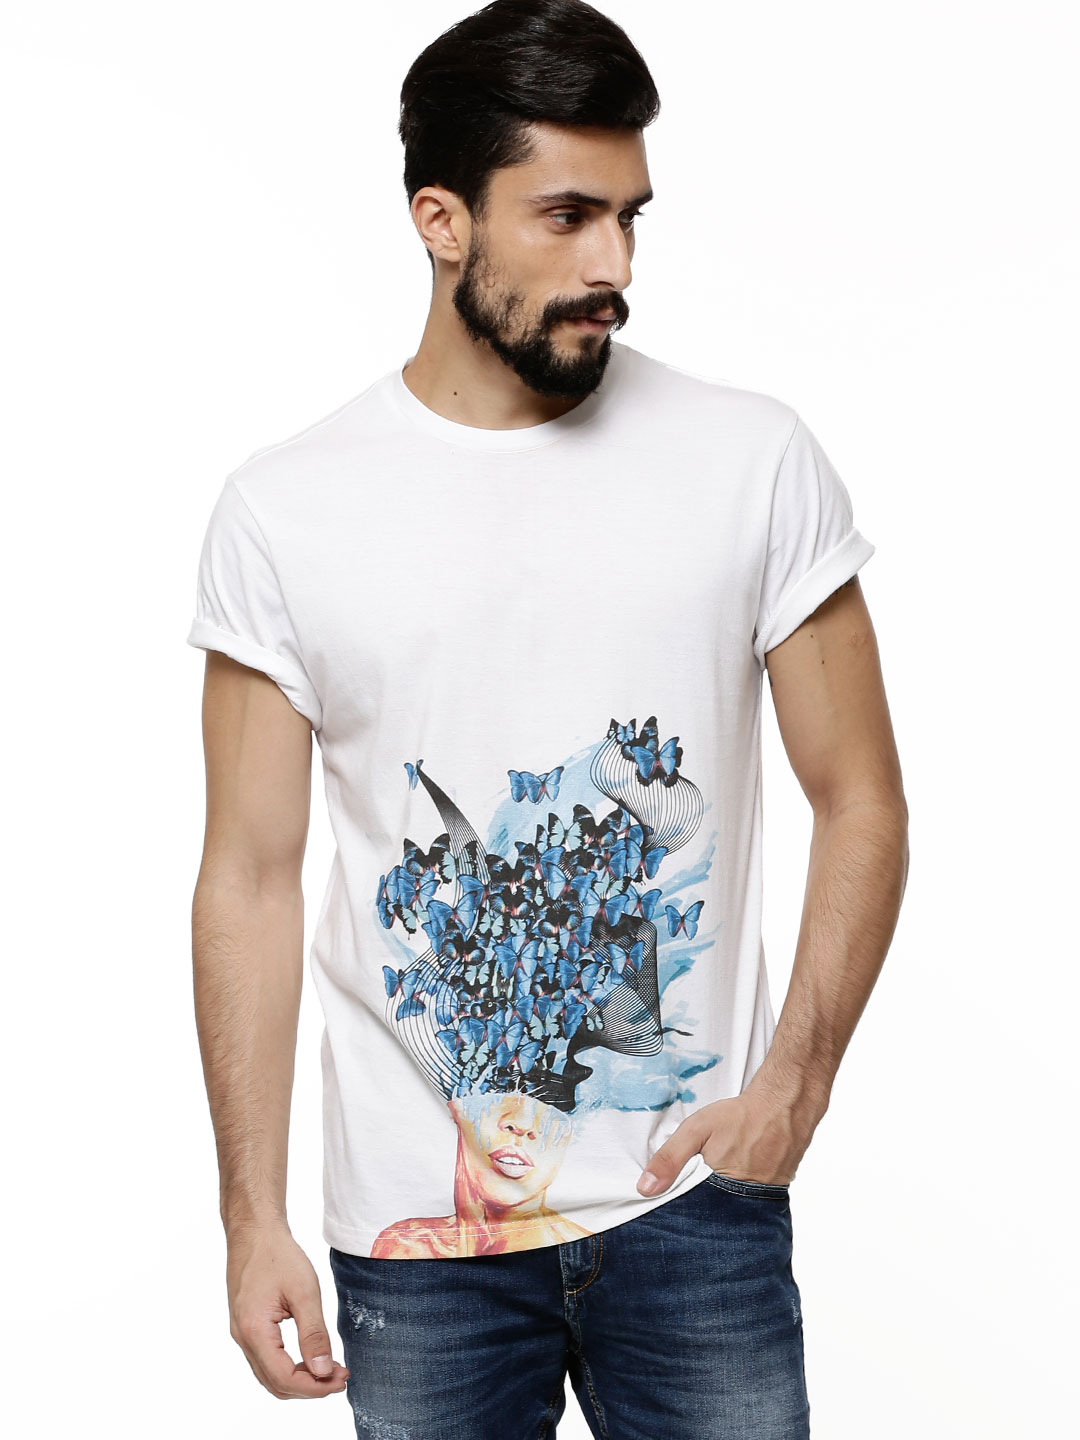 KOLLECTIVE White Shattered Mind Print T-shirt By Esther Ajibade 1